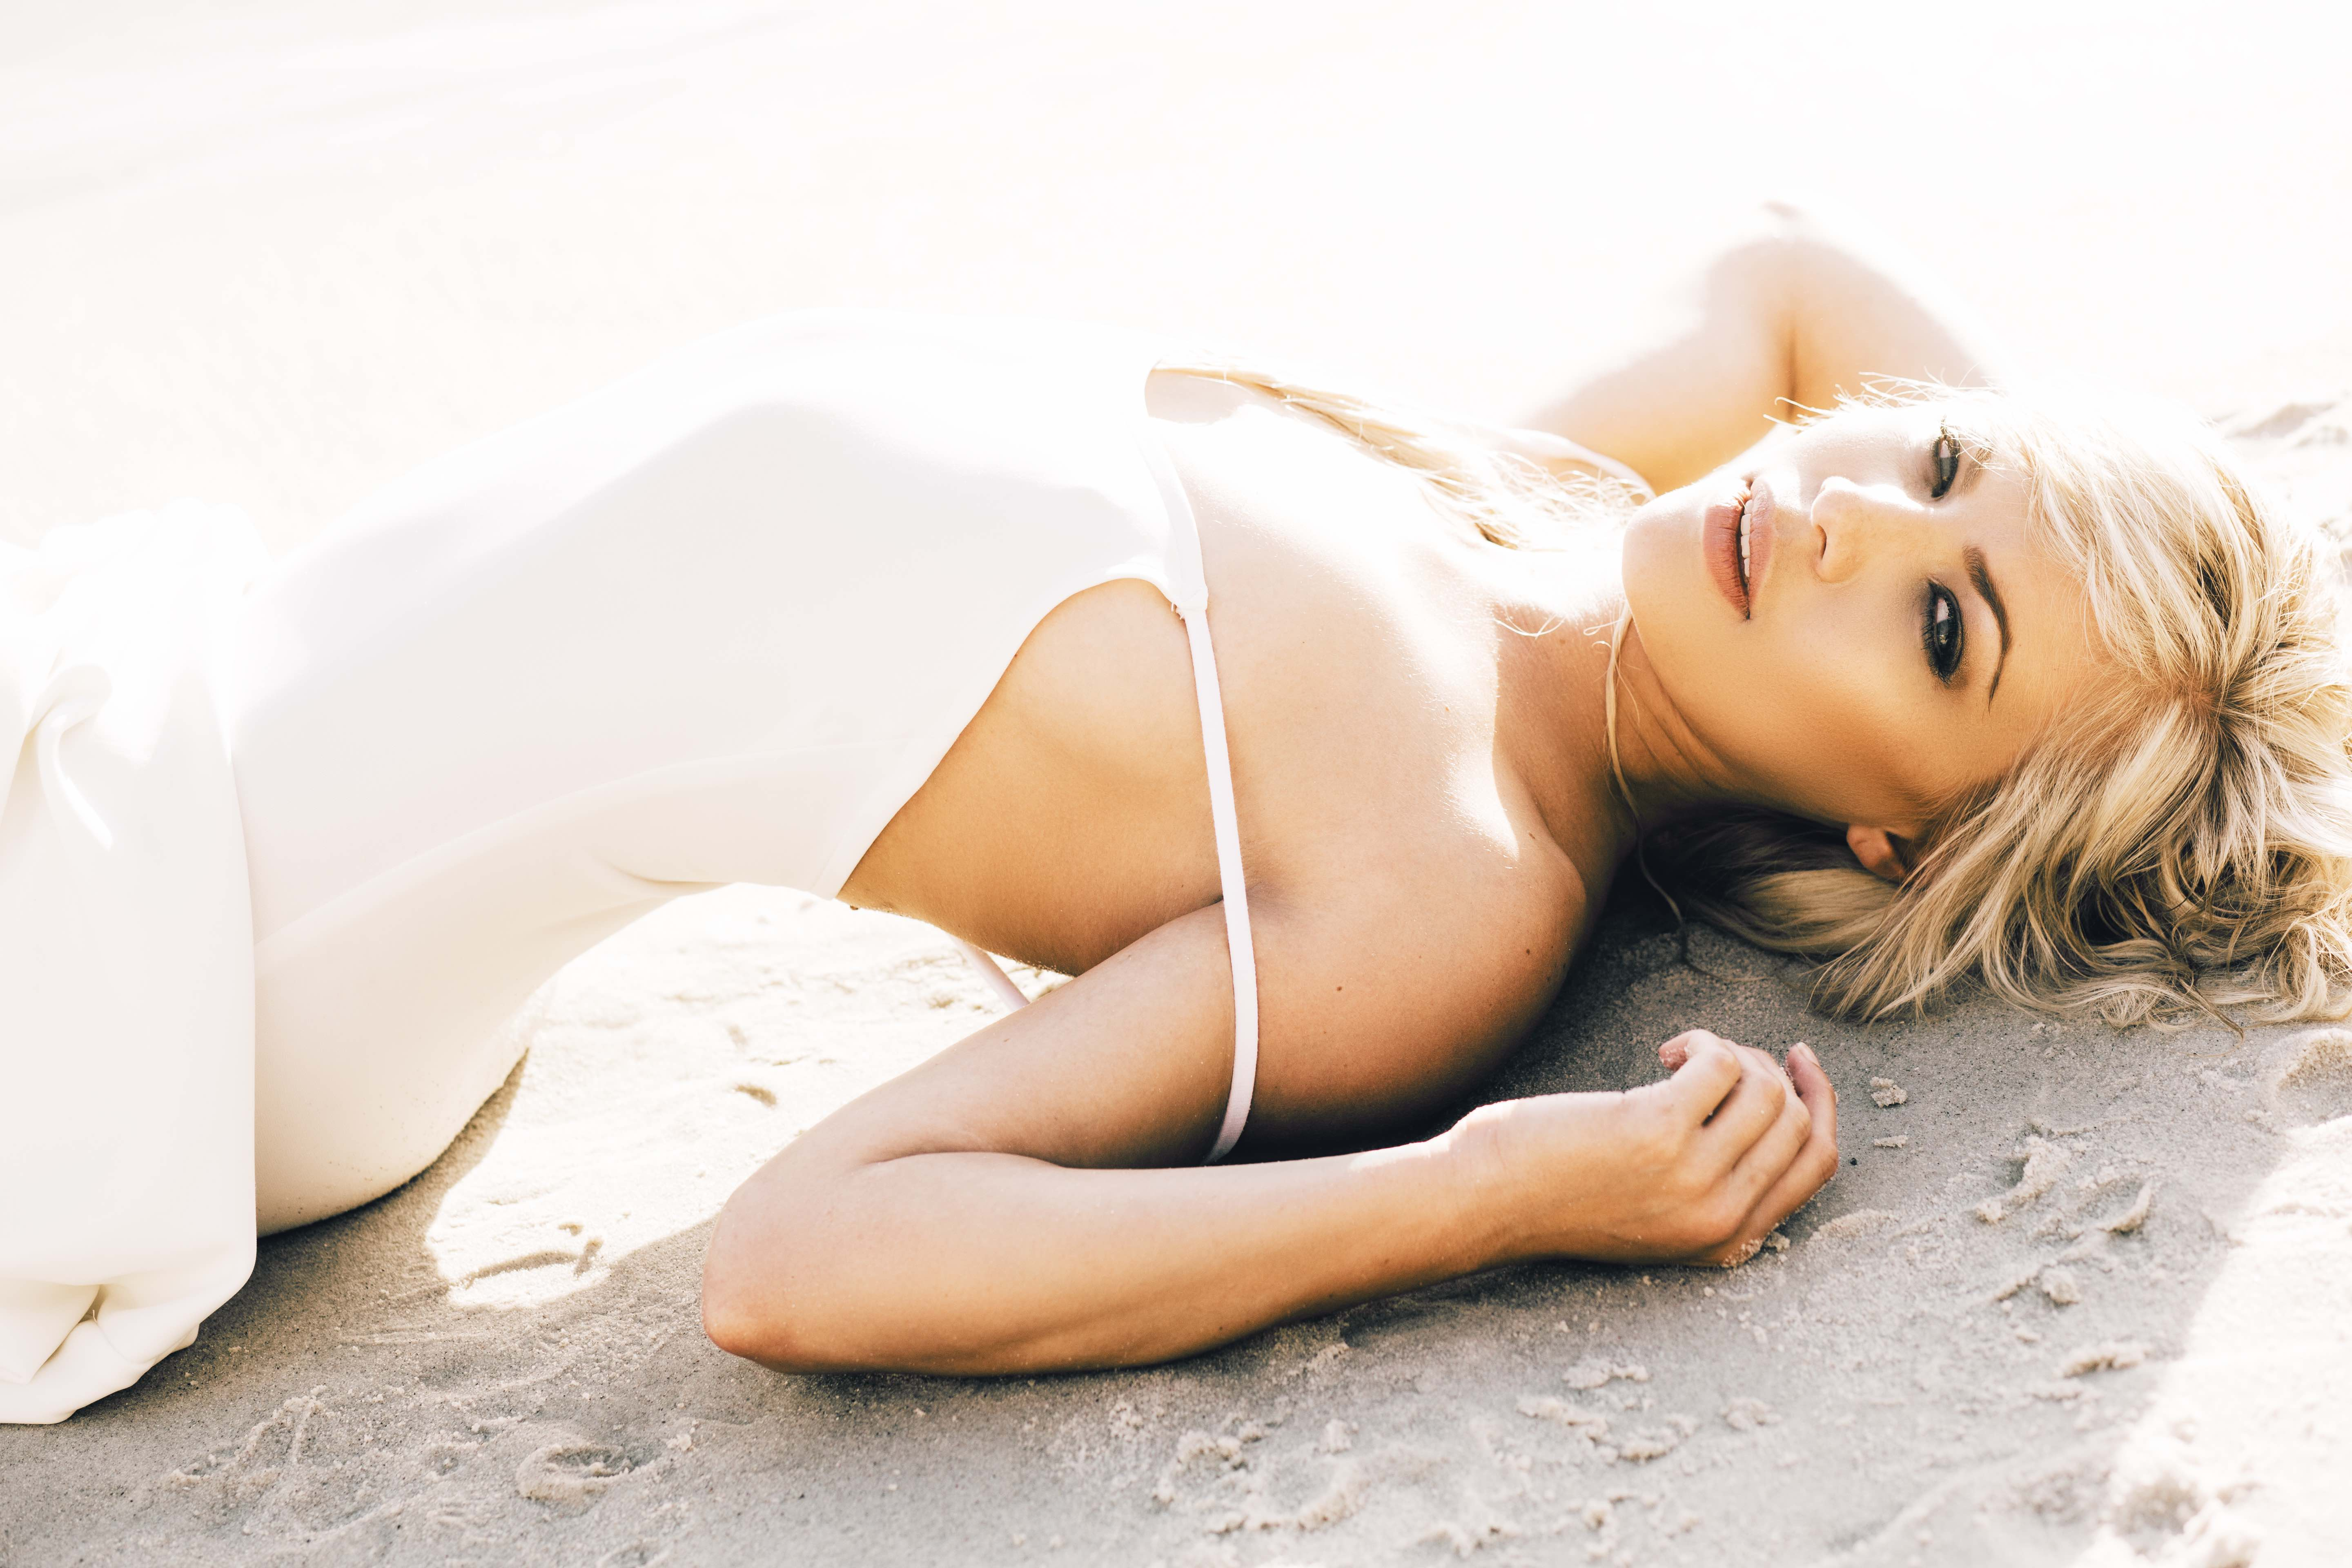 Our South African girls feature with the gorgeous Monica van der Bank